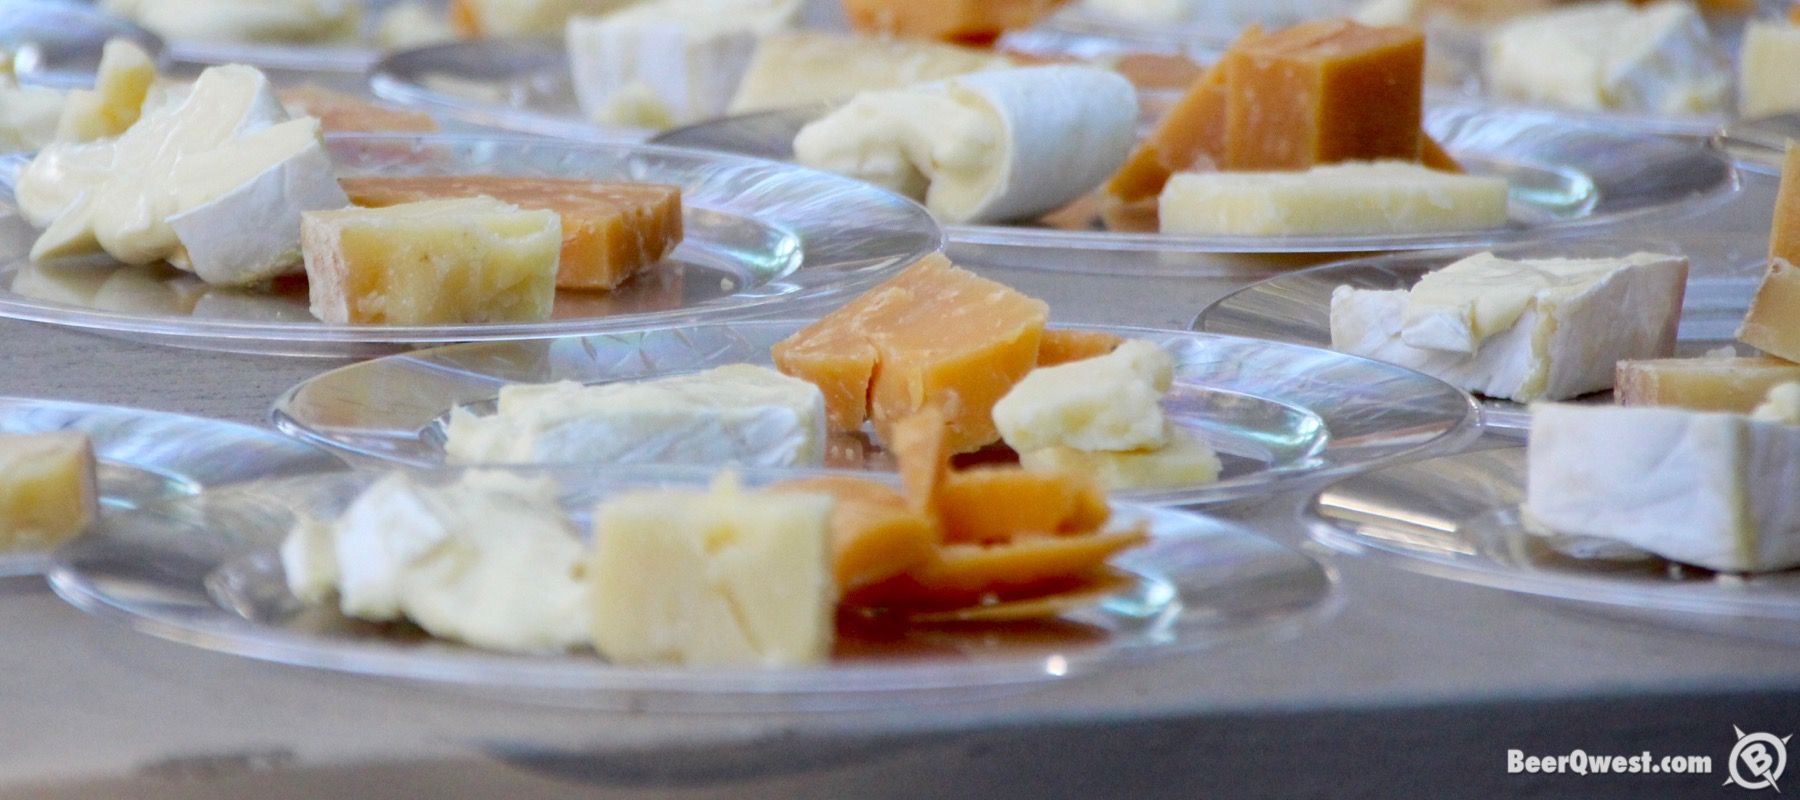 Cheese pairings at Cali Uncorked.